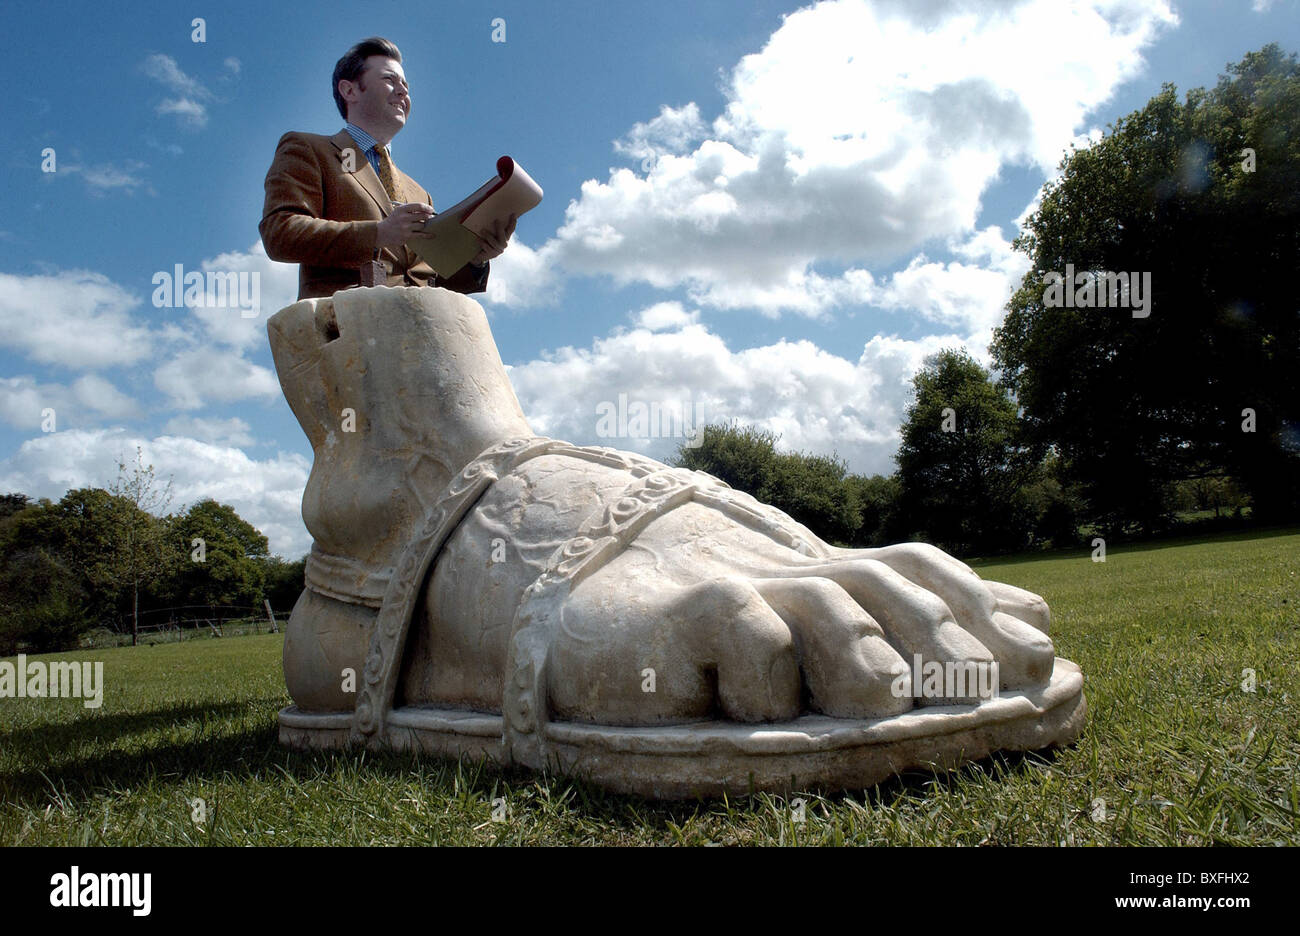 A Sothebyu0027s Auctioneer With A Gigantic Marble Foot From A Roman Statue At A  Sale Of